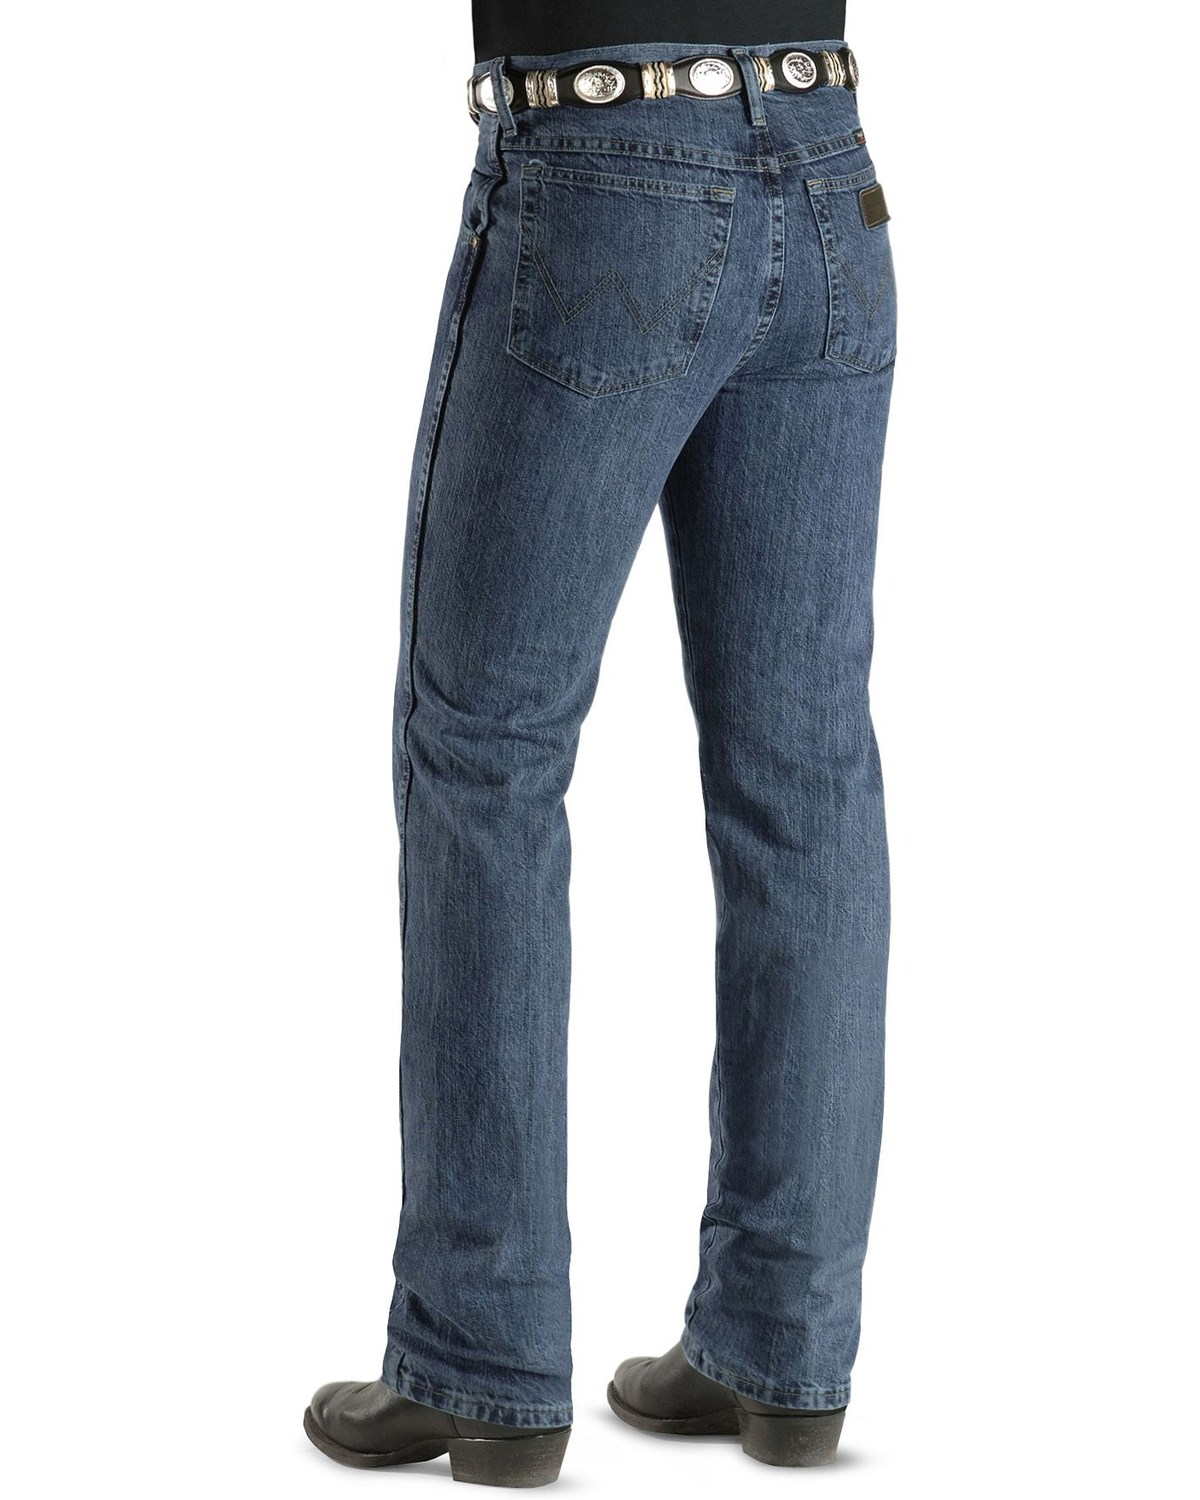 a79e9001 Zoomed Image Wrangler Men's Slim Fit Cowboy Cut PBR Jeans, Auth Stone, ...